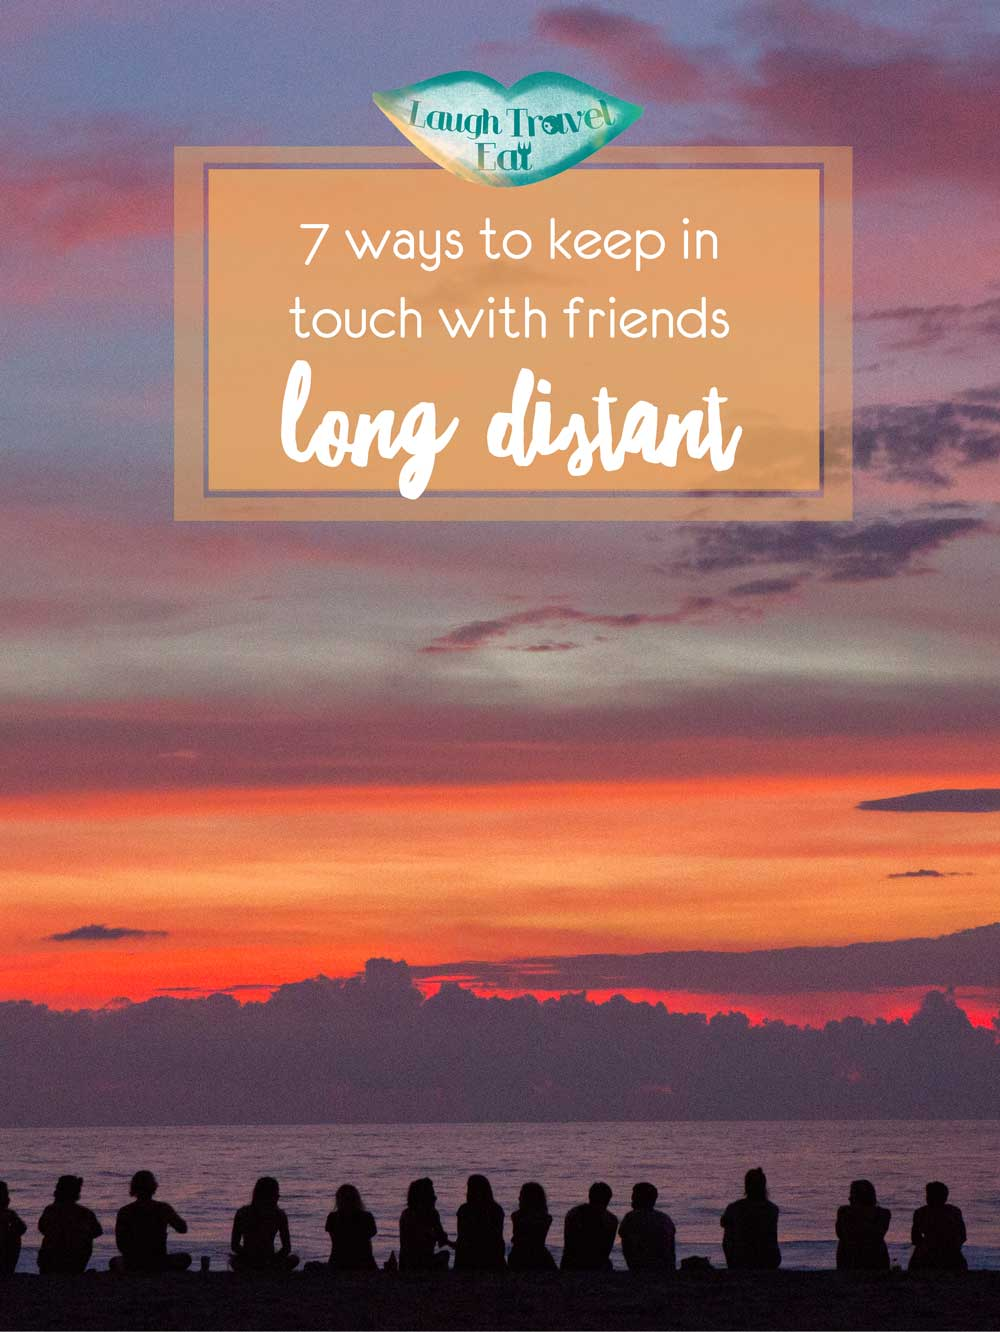 7 ways to keep in touch with friends long distant | Laugh Travel Eat